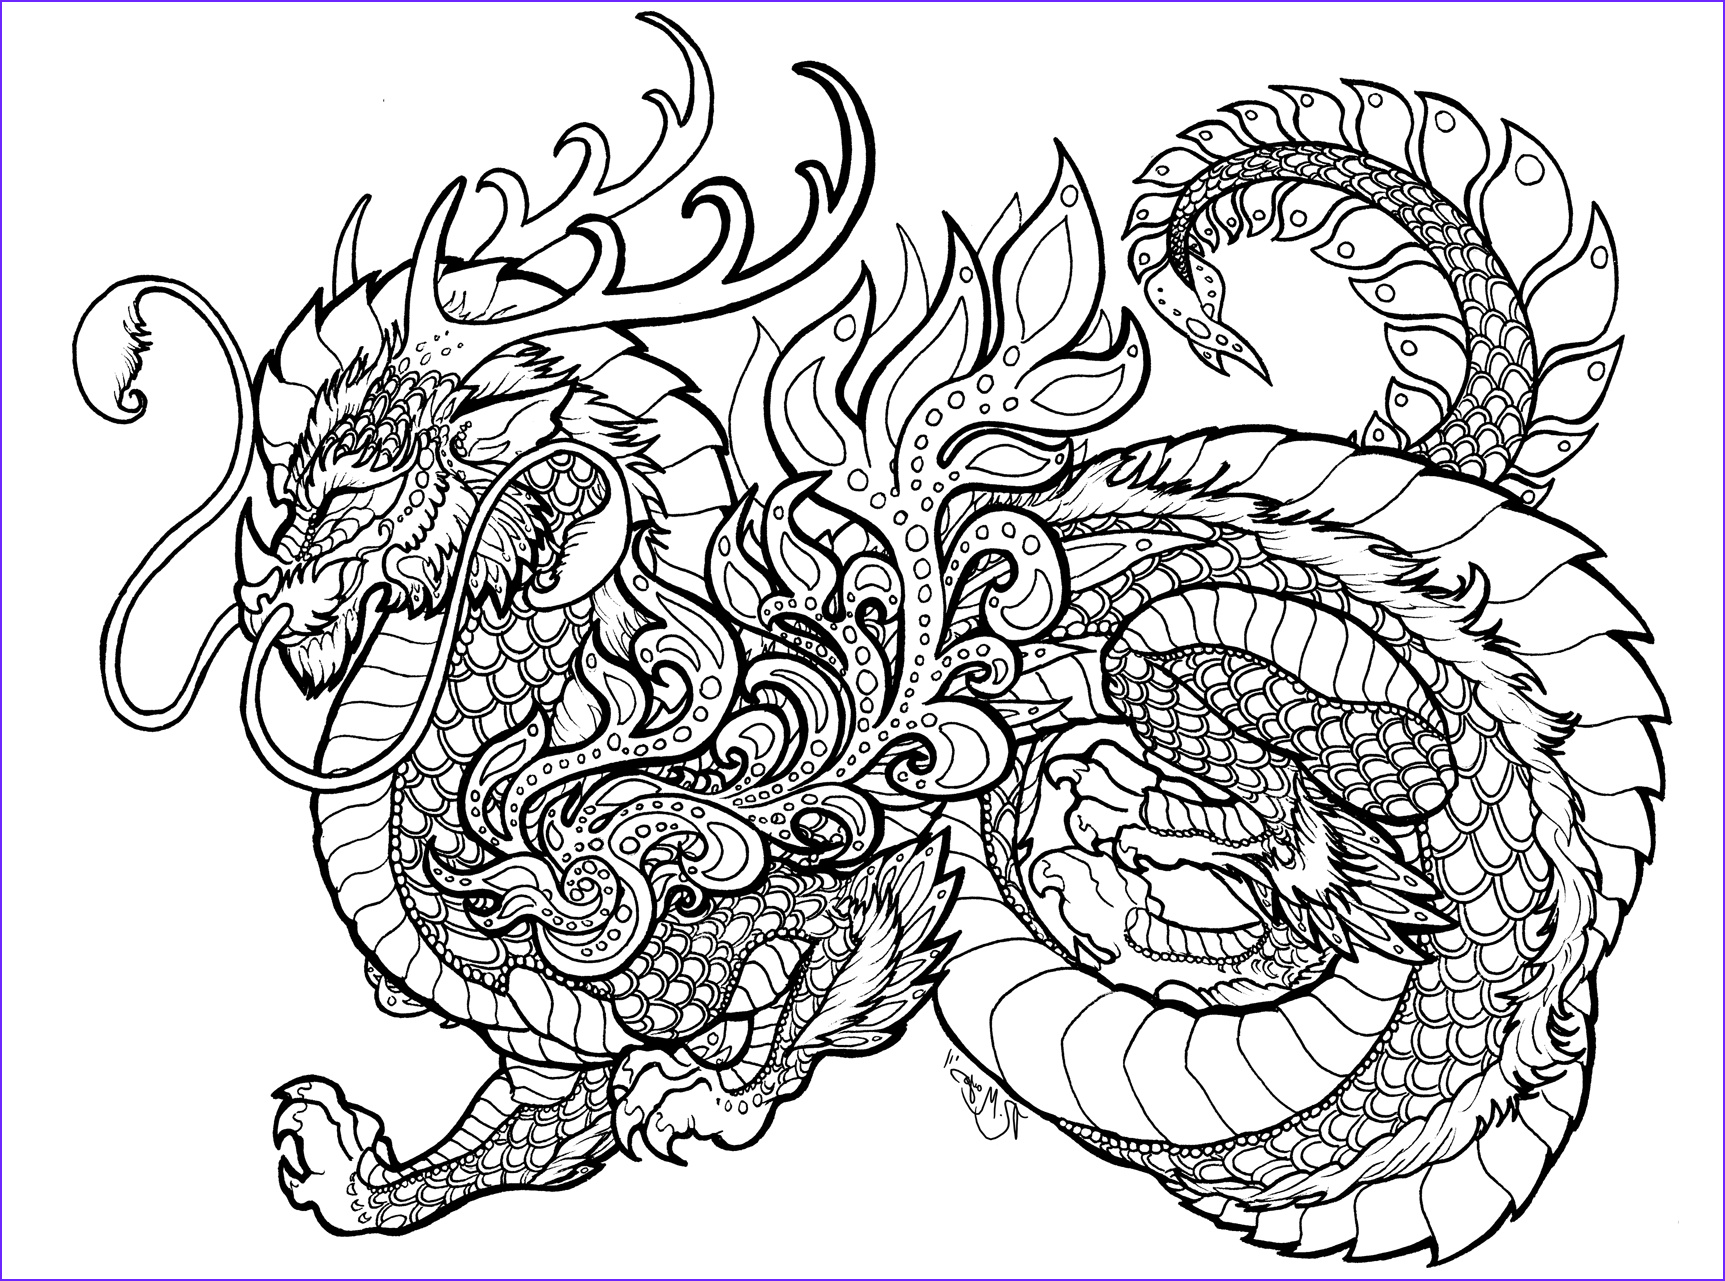 Black and White Coloring Pages for Adults Beautiful Collection Jade Synergy Lineart by Rachaelm5viantart On